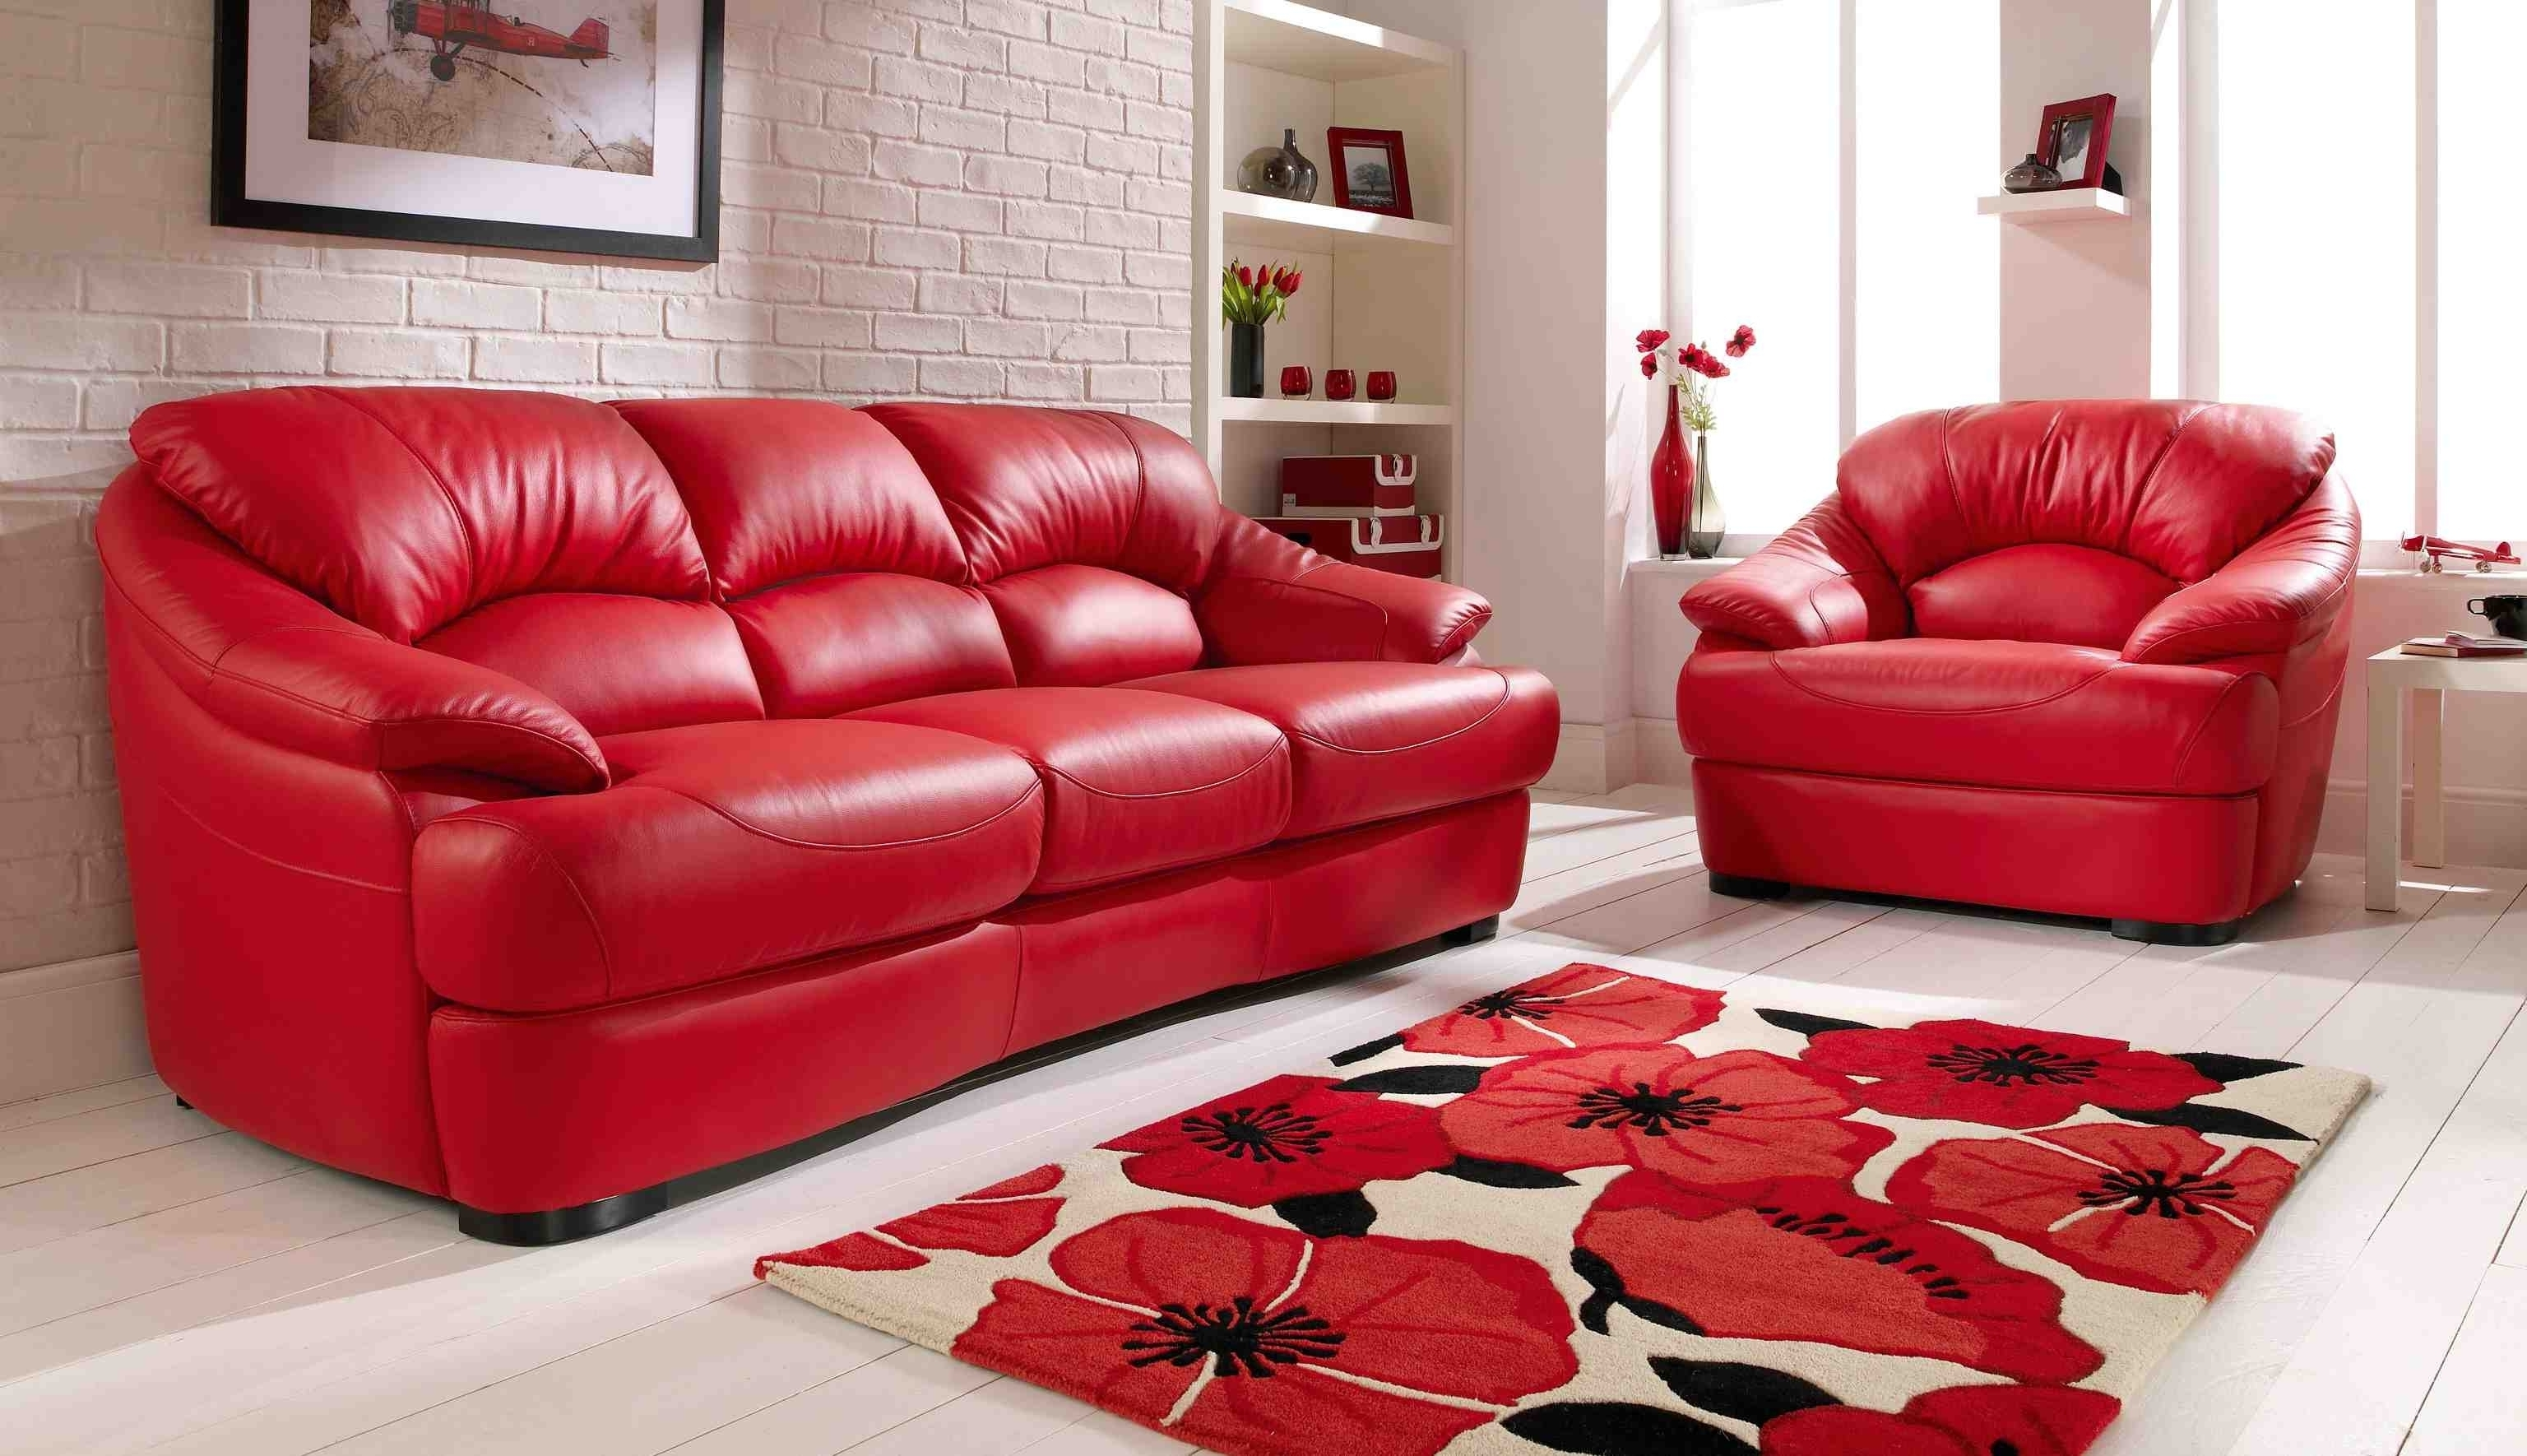 Fashionable Red Leather Sofa Living Room Ideas Home Design Ideas Pertaining To Inside Red Leather Couches For Living Room (View 14 of 15)